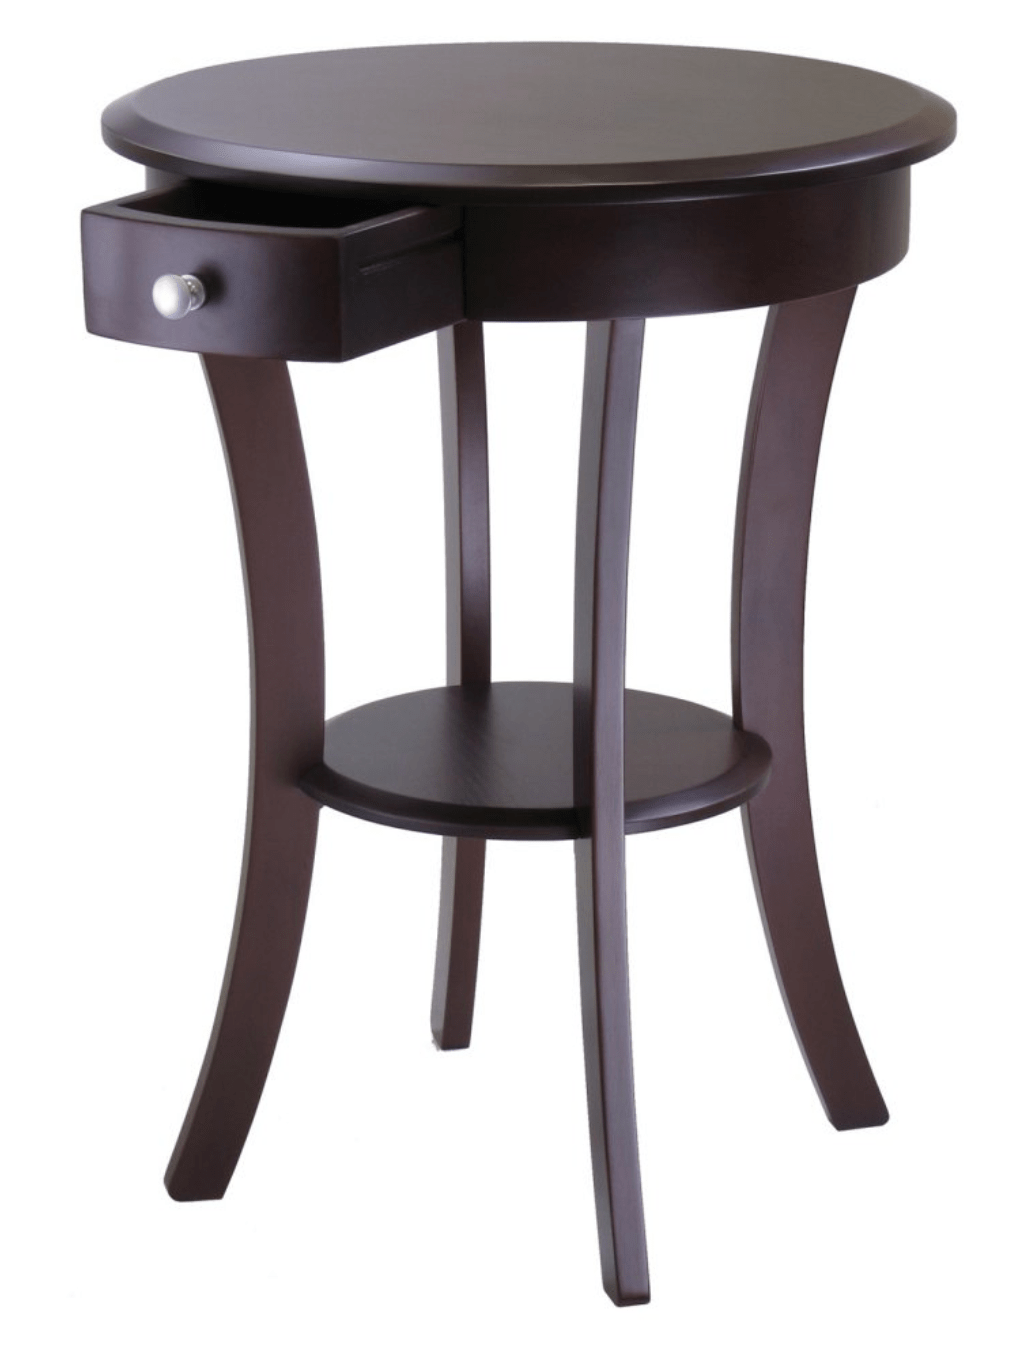 lovely small accent table for round wood min tables furniture contemporary the bedroom leick corner computer and writing desk metal patio coastal lamps bbq side antique occasional